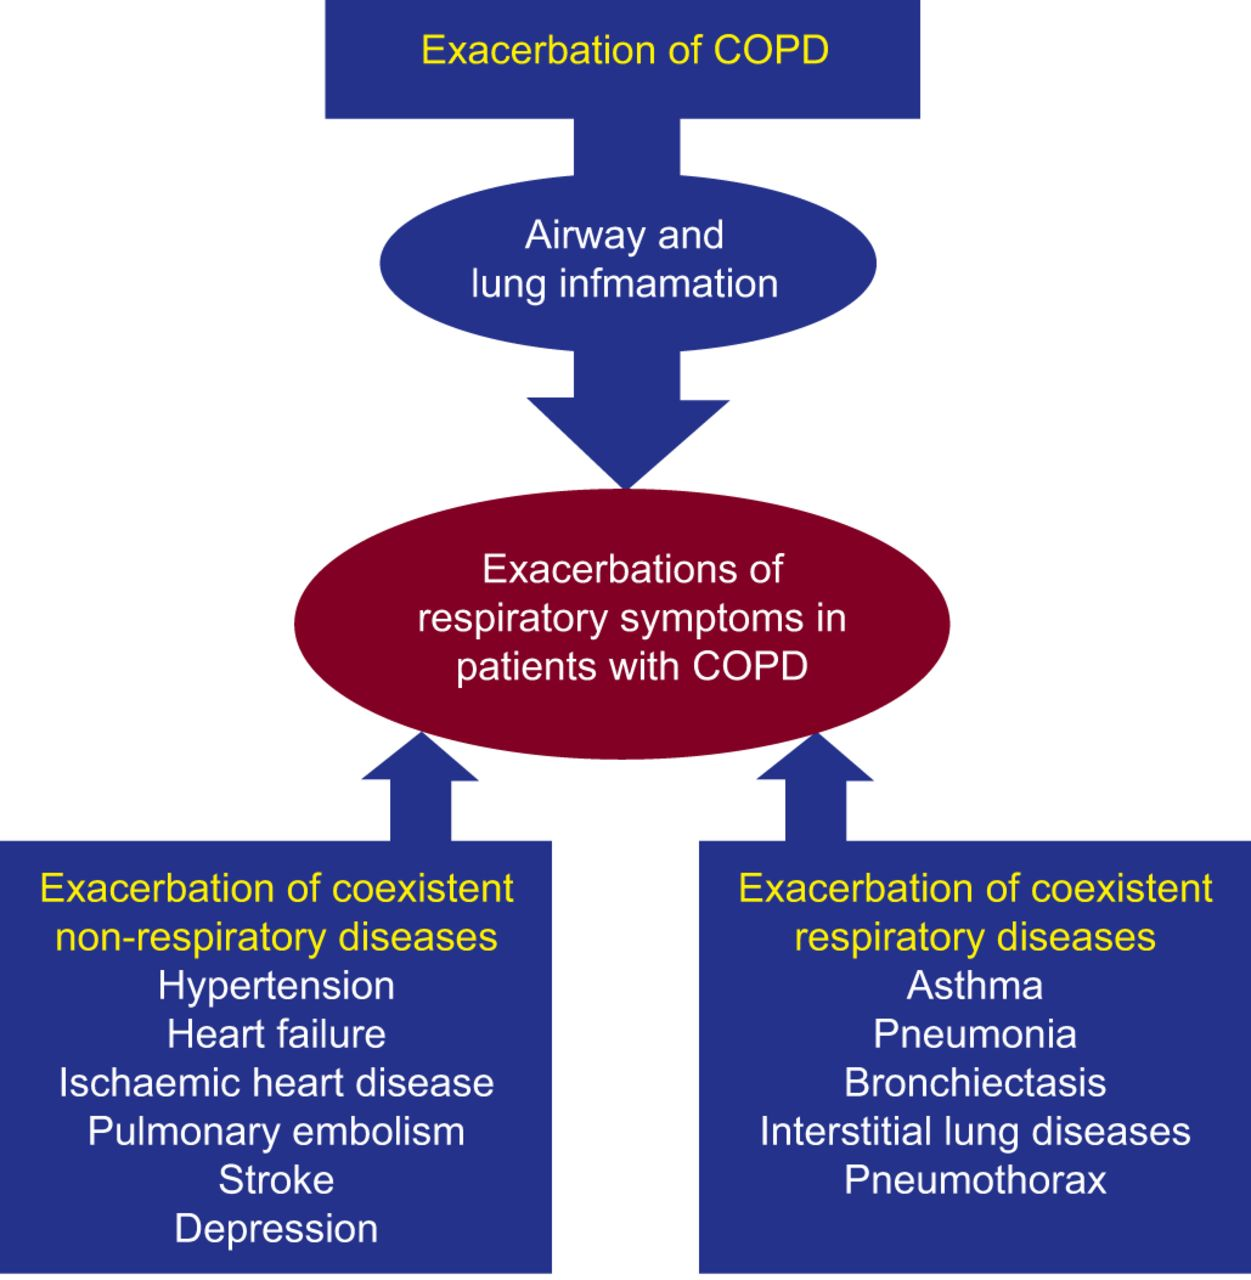 Exacerbation Of Respiratory Symptoms In Copd Patients May. Ladies Signs. Bowel Perforation Signs. Hormonal Imbalance Signs Of Stroke. Library Noise Signs. Hot Dog Signs. Embossed Signs Of Stroke. Cerebrovascular Accident Signs. Pilate Signs